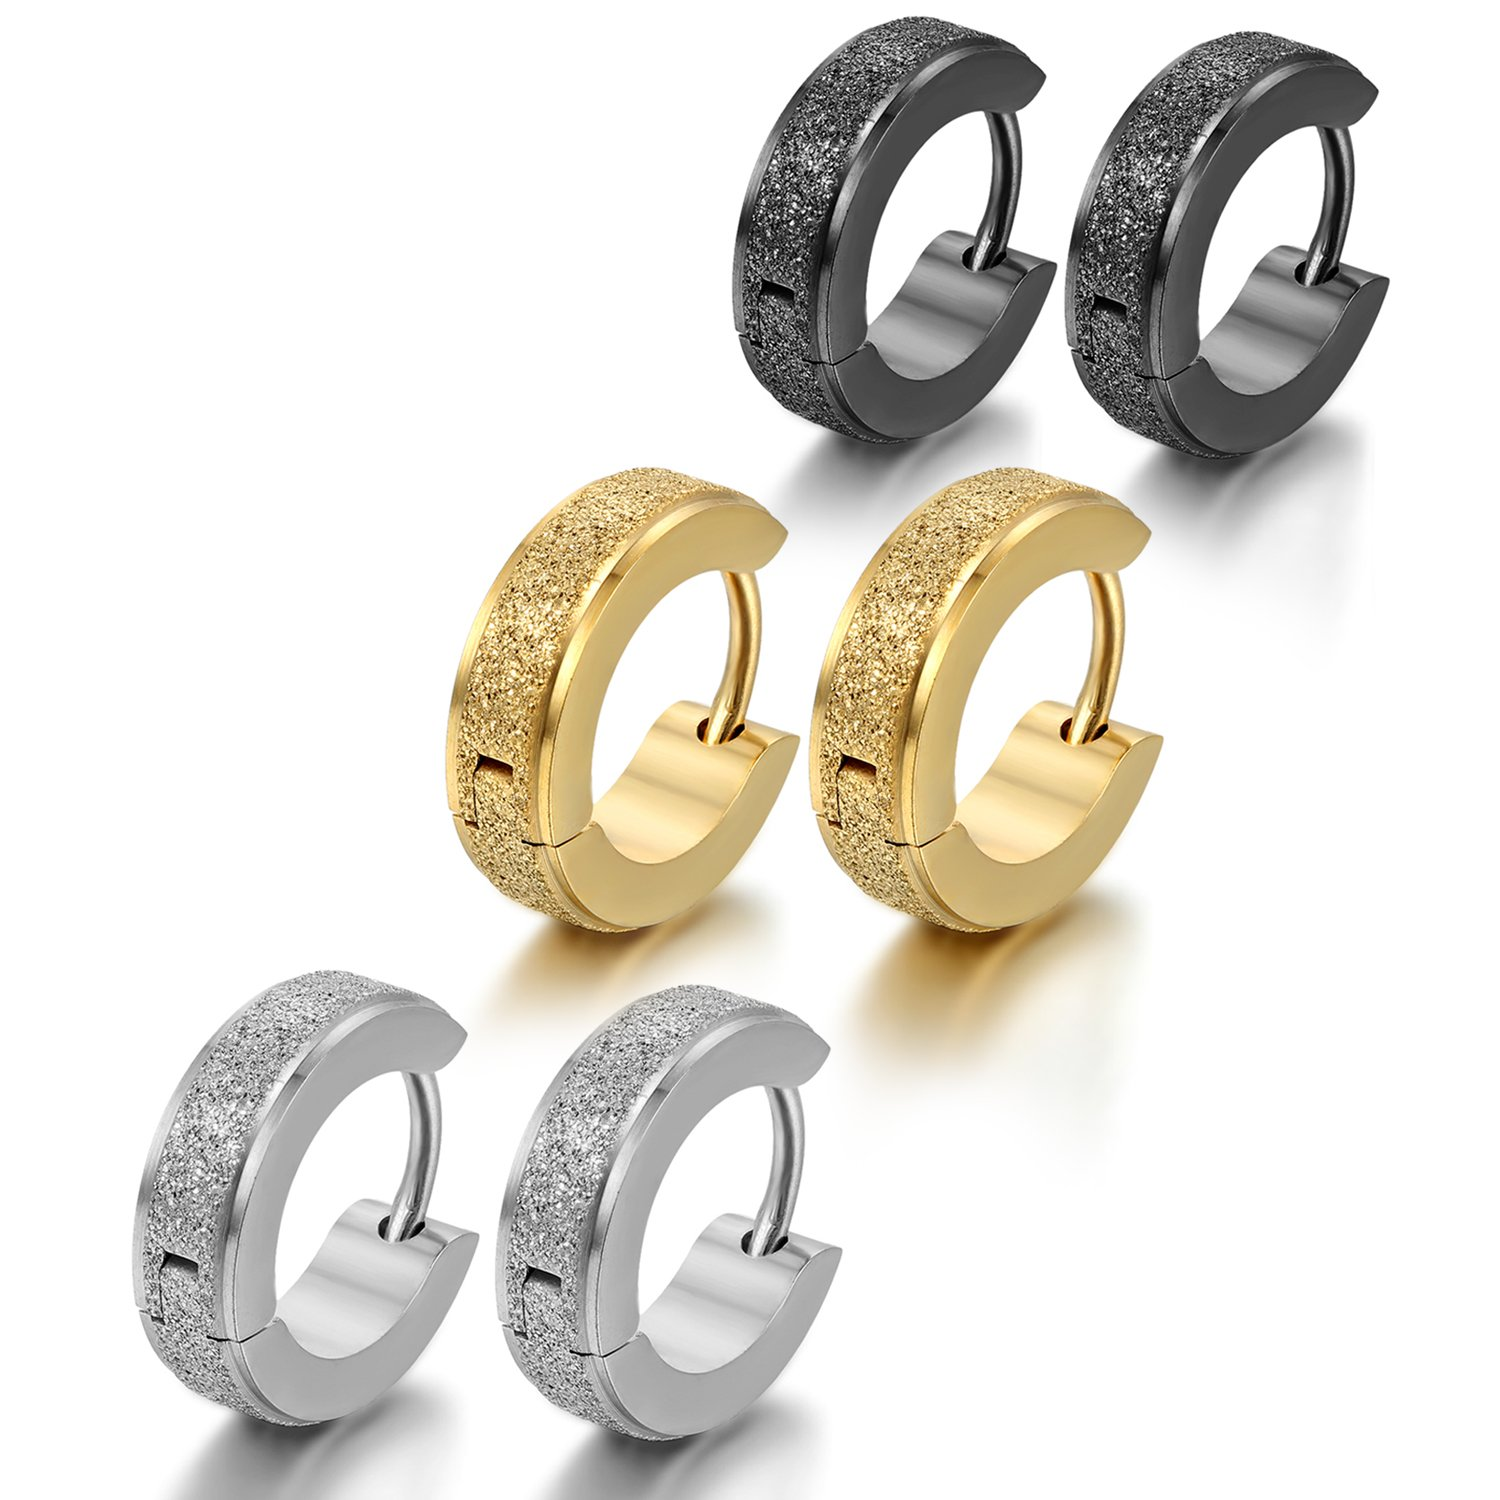 Oidea 6pcs 4MM Stainless Steel Hinge Hoop Earrings,Assorted Color Gold, Silver ,Black,Hypoallergenic